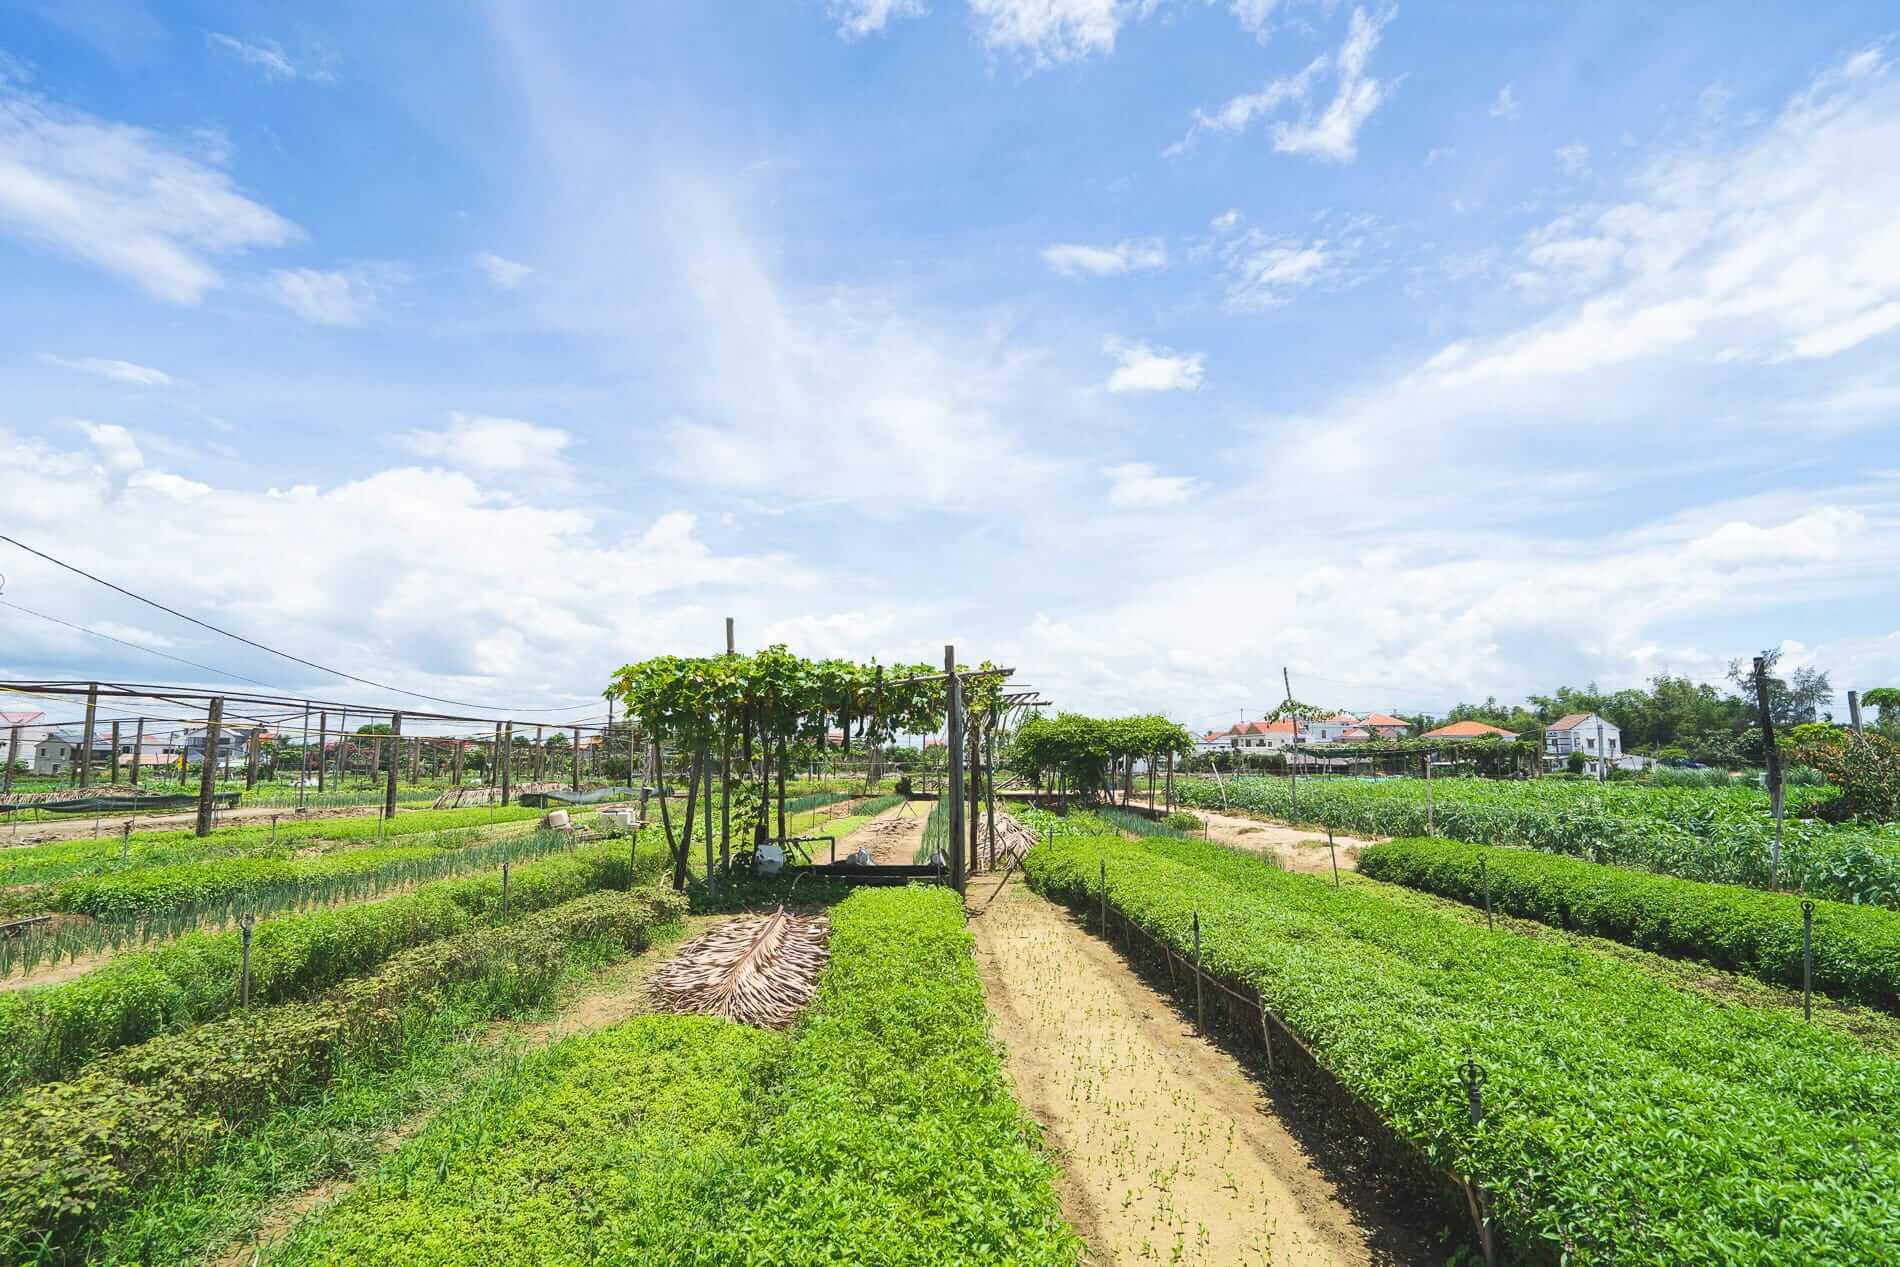 Blue sky and green fields - Tra Que Vegetable Village